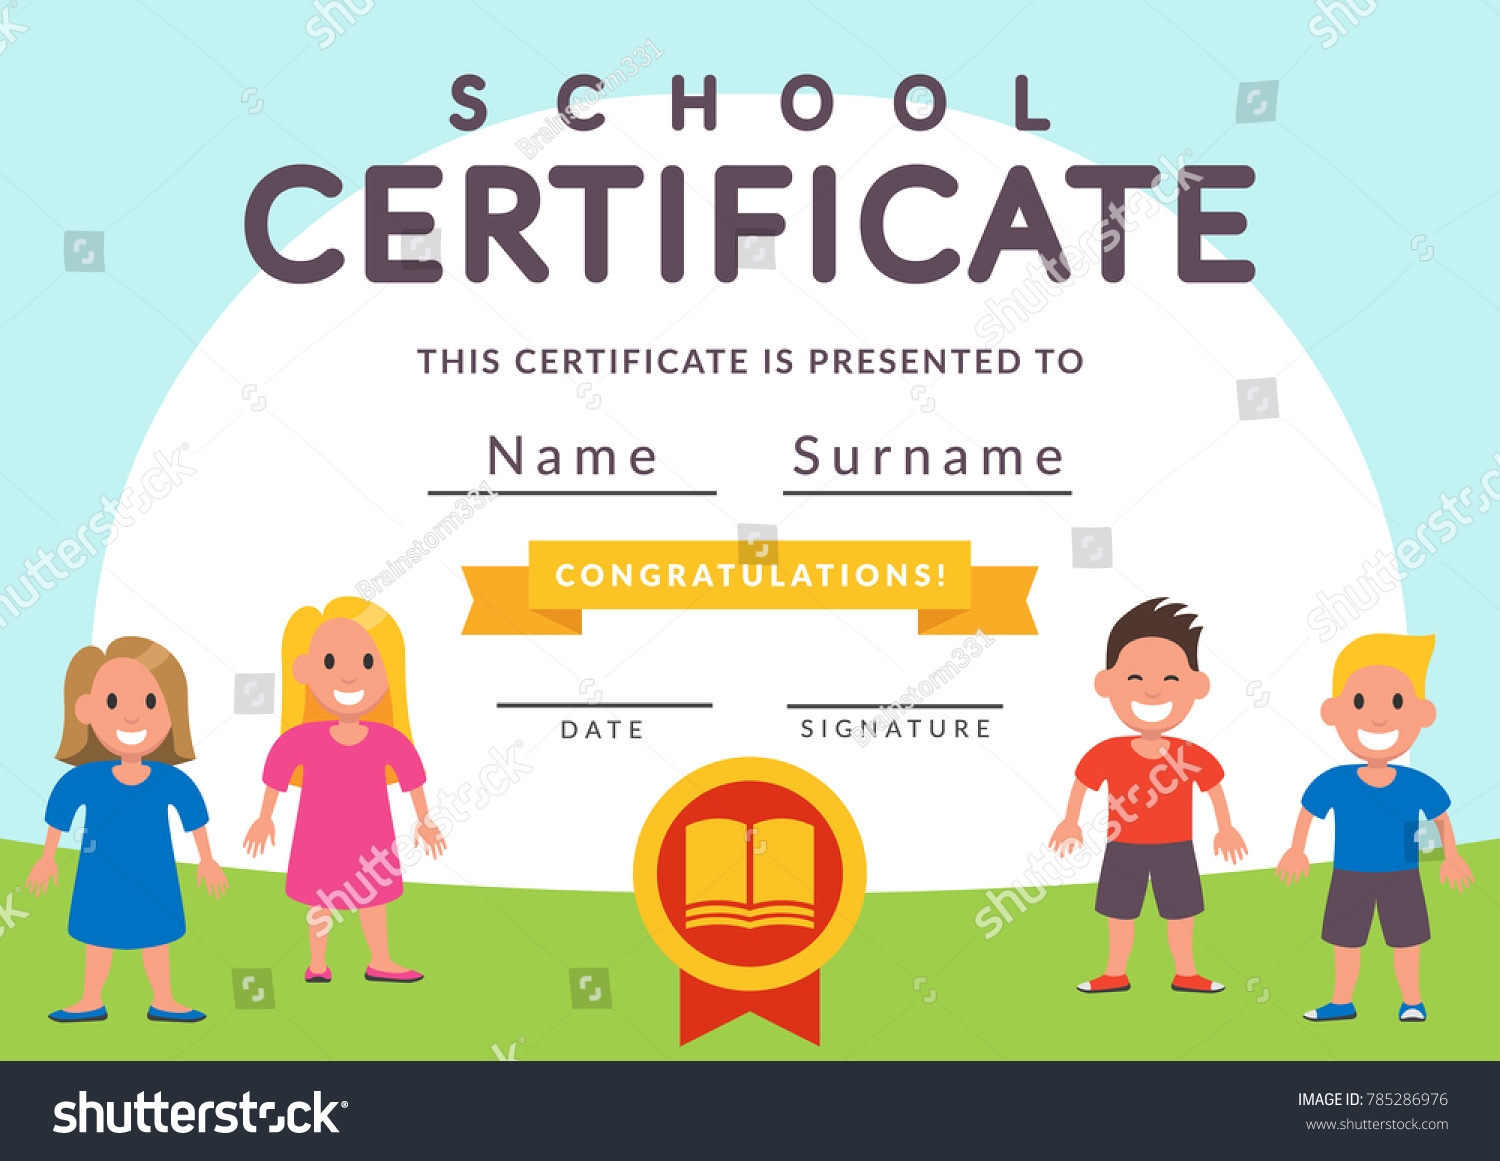 Child certificate template images templates example free download school certificate template kids kindergarten students stock school certificate template kids kindergarten students stock vector 785286976 xflitez Images